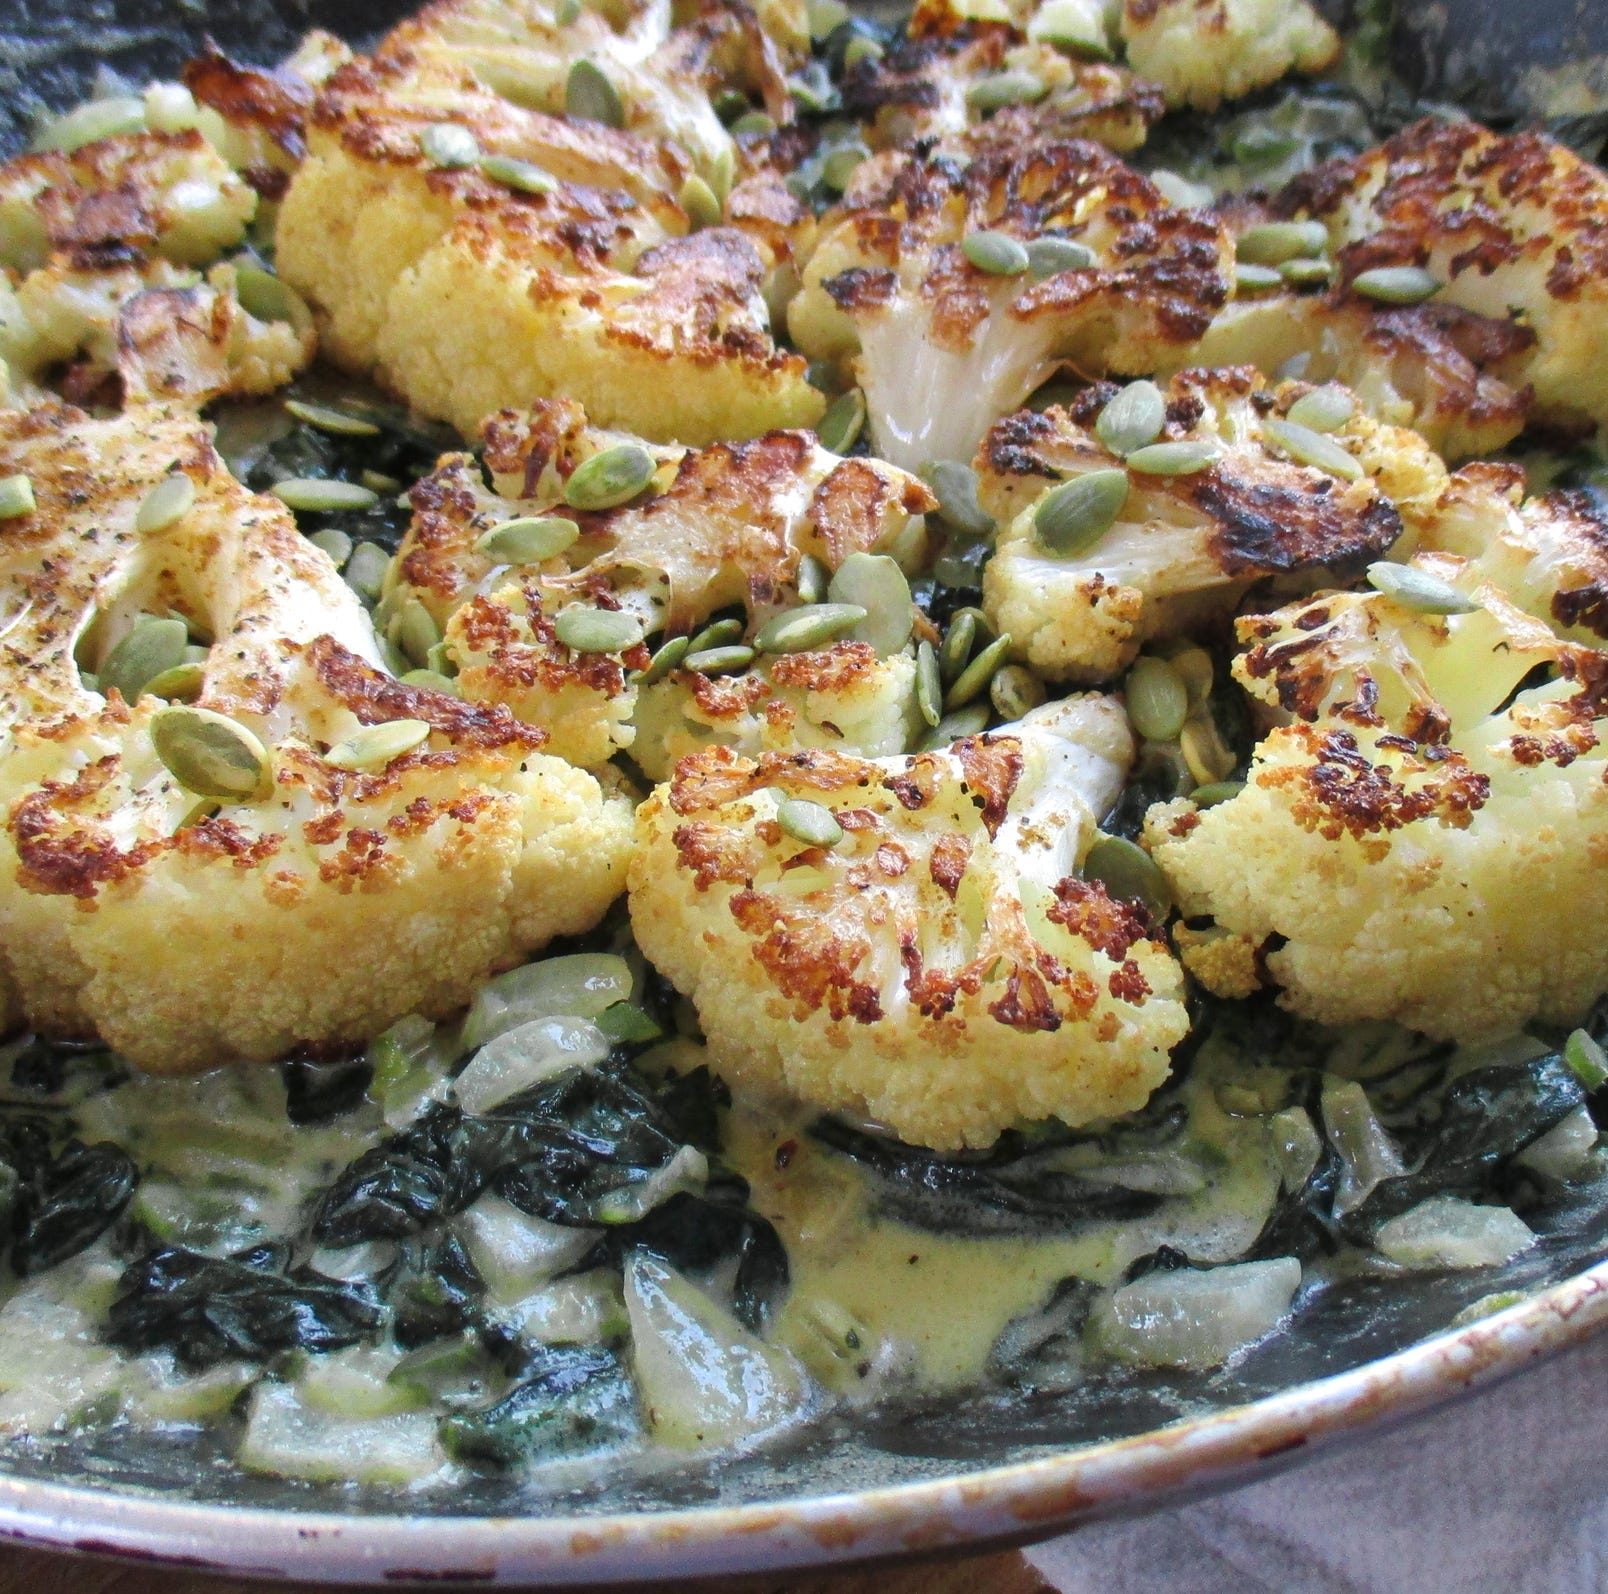 Roasted cauliflower over creamed spinach will delight keto dieters